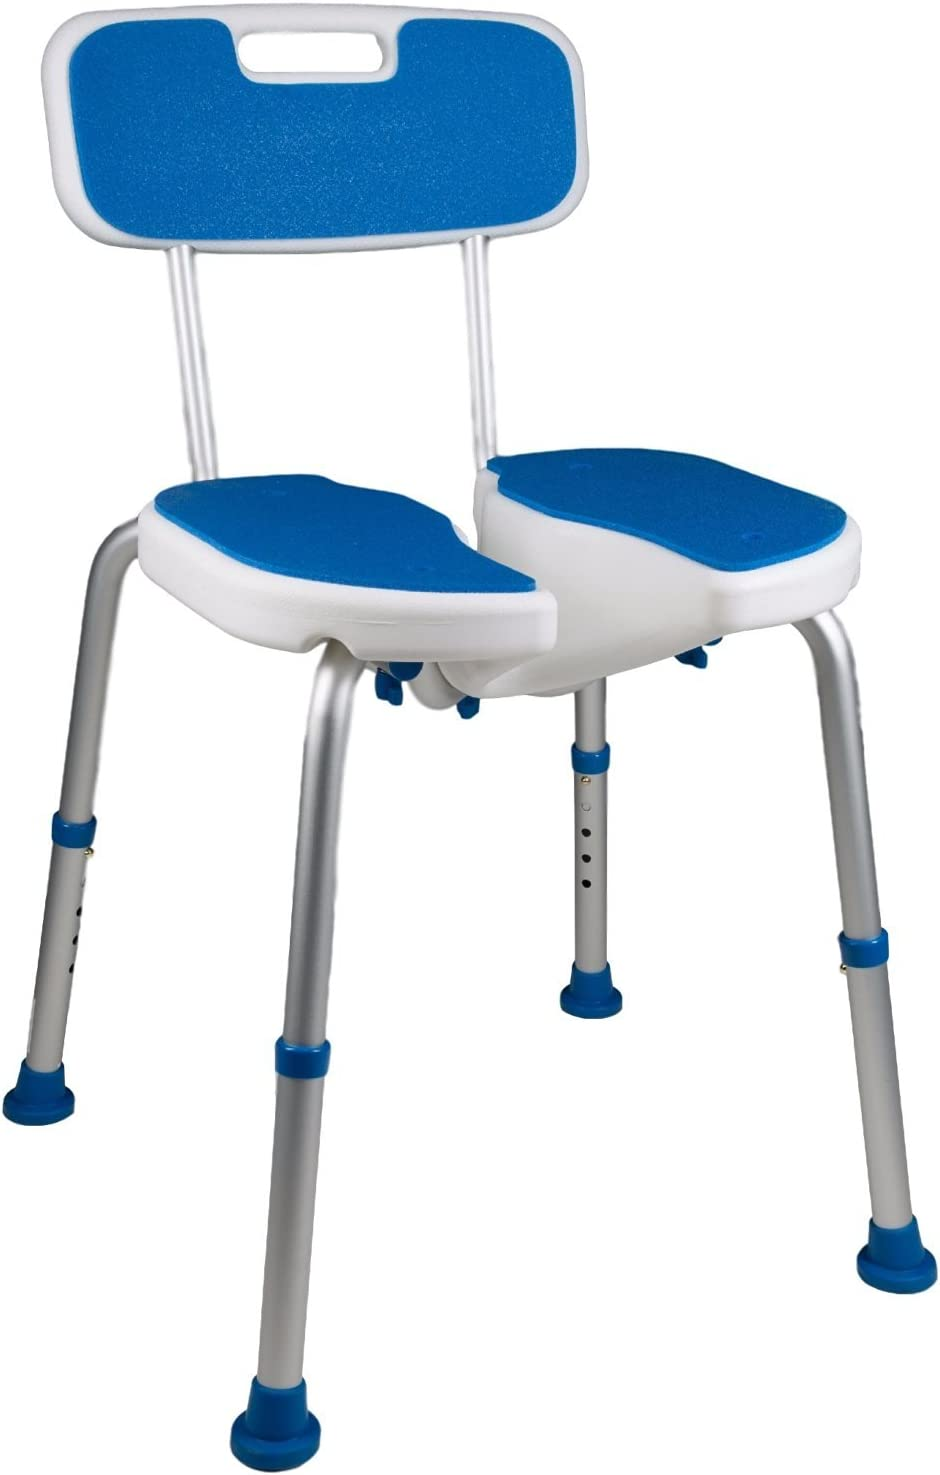 PCP Shower Safety Seat, Cutout for Easy Cleaning, Non-Slip Bath Support Recovery Chair with Backrest, White/Blue: Health & Personal Care